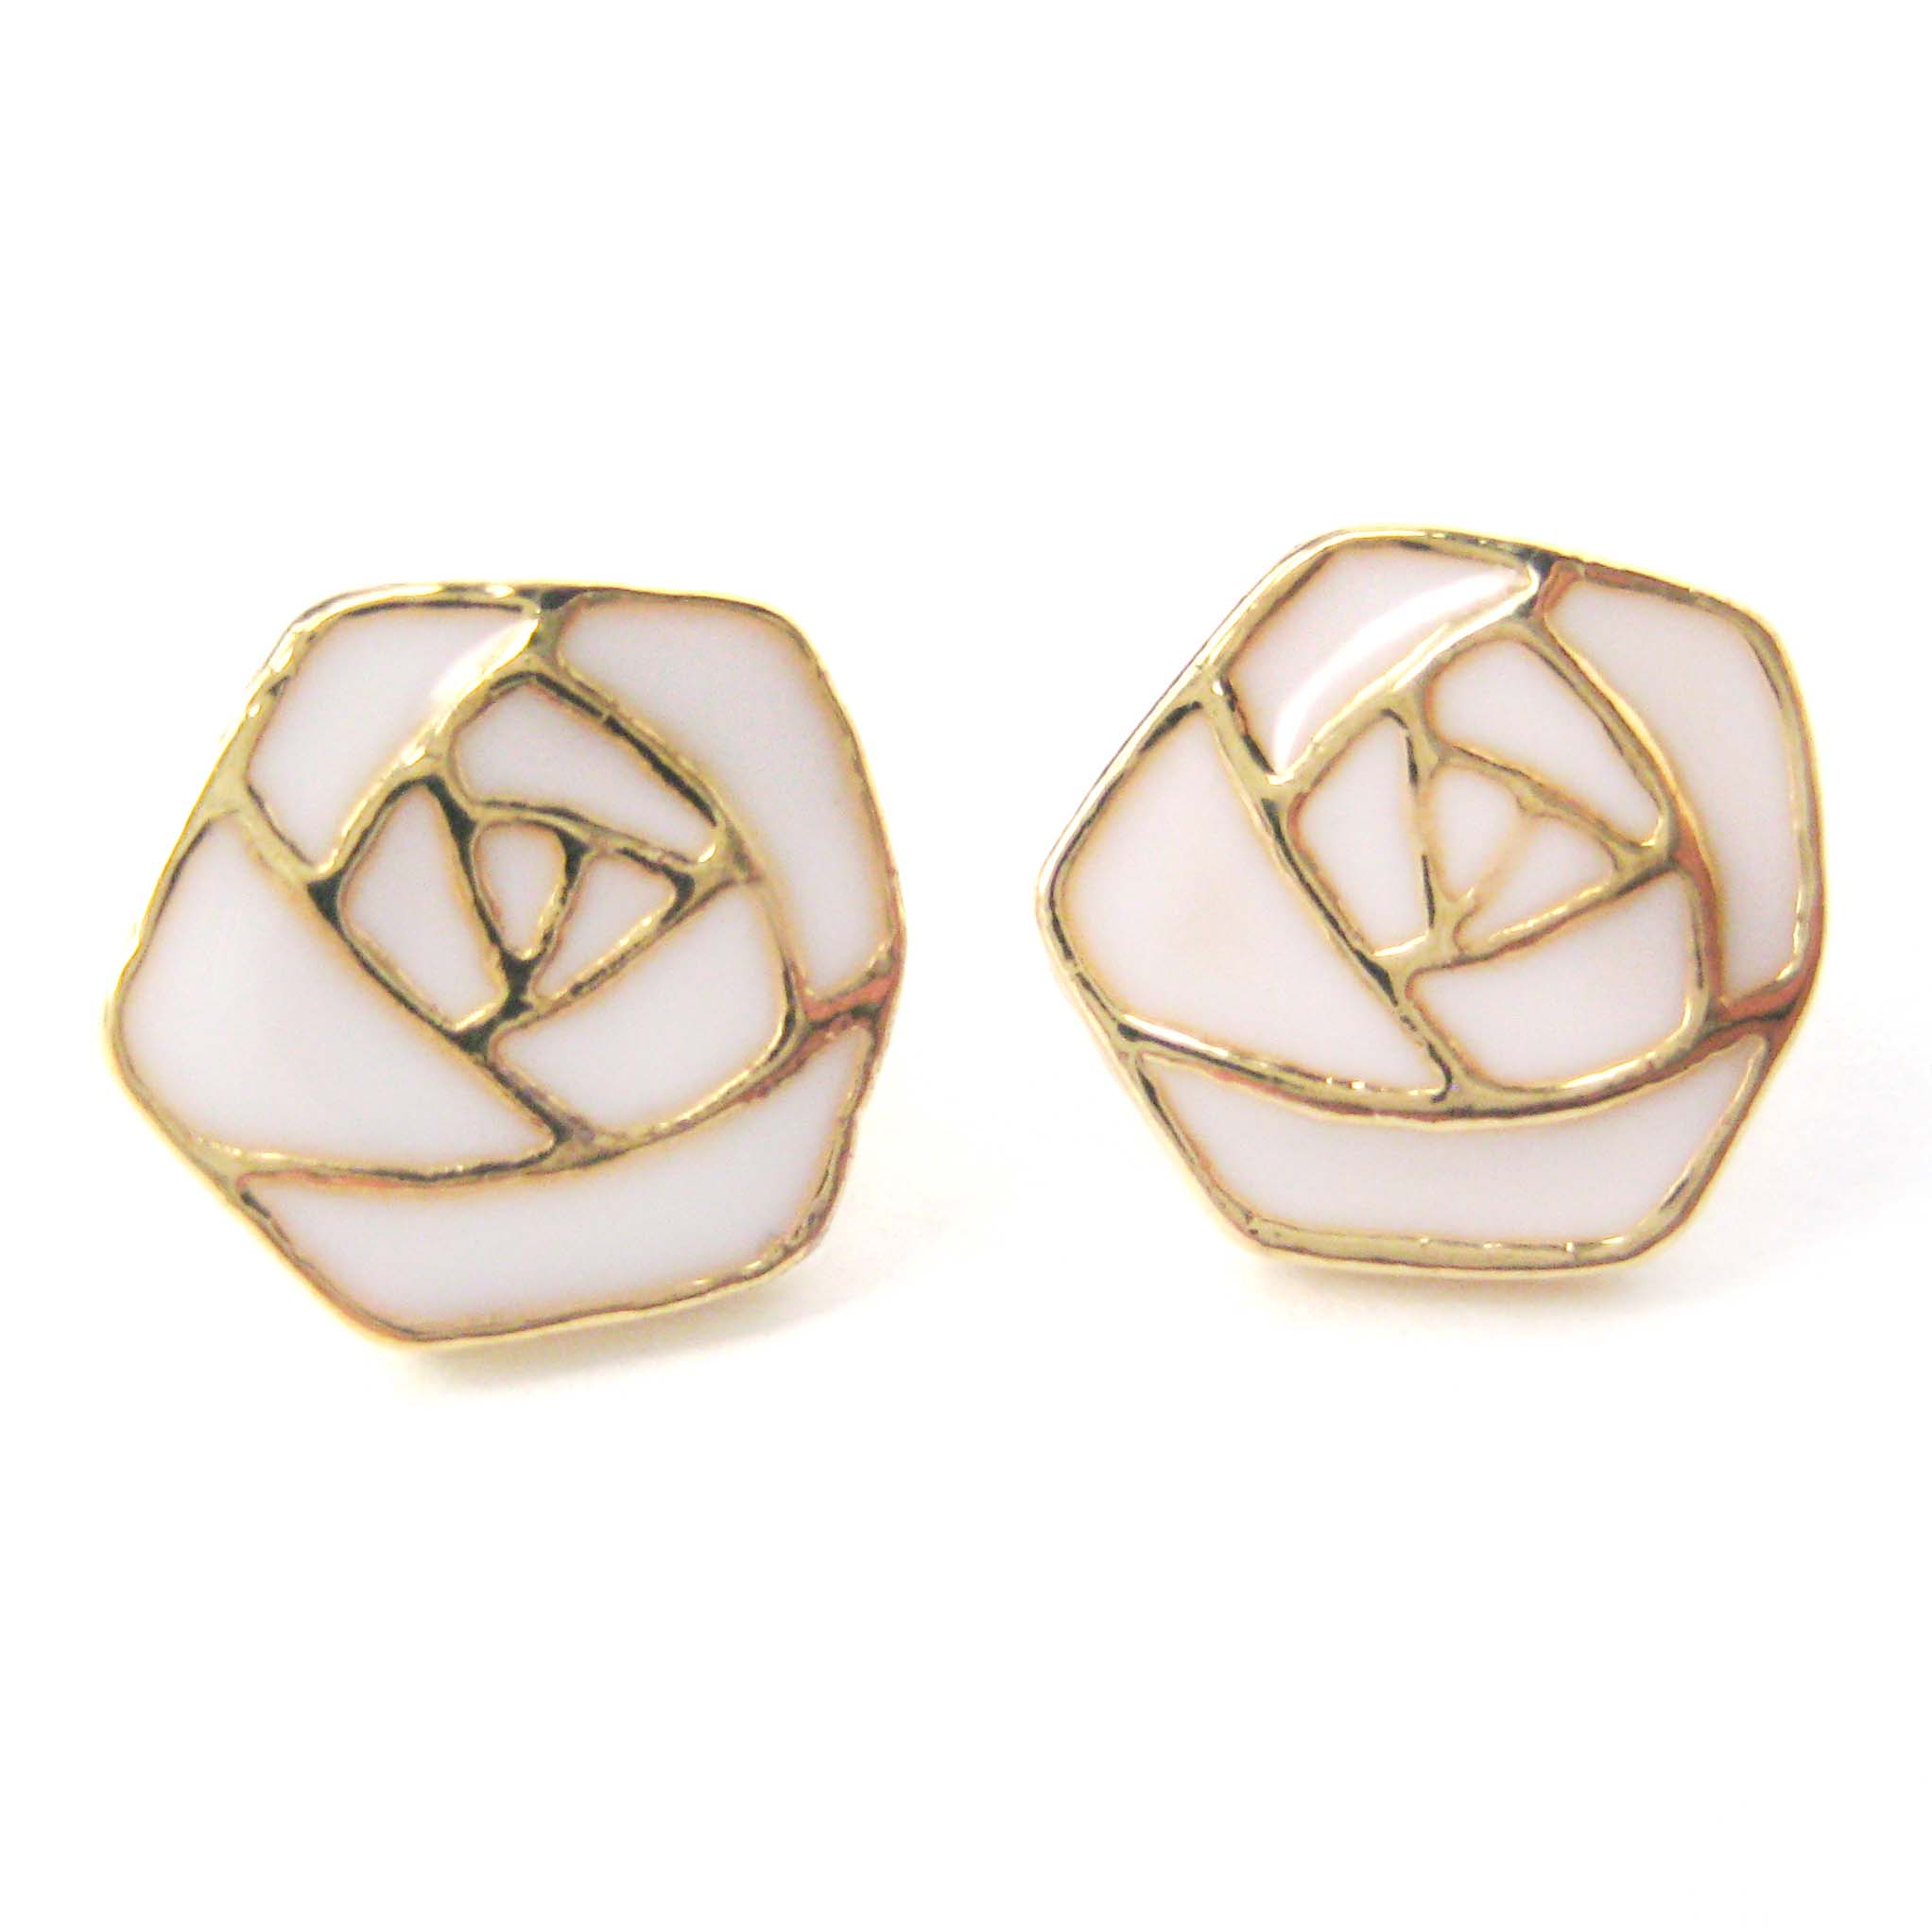 Small Floral Rose Shaped Outline Stud Earrings in White on Gold ...